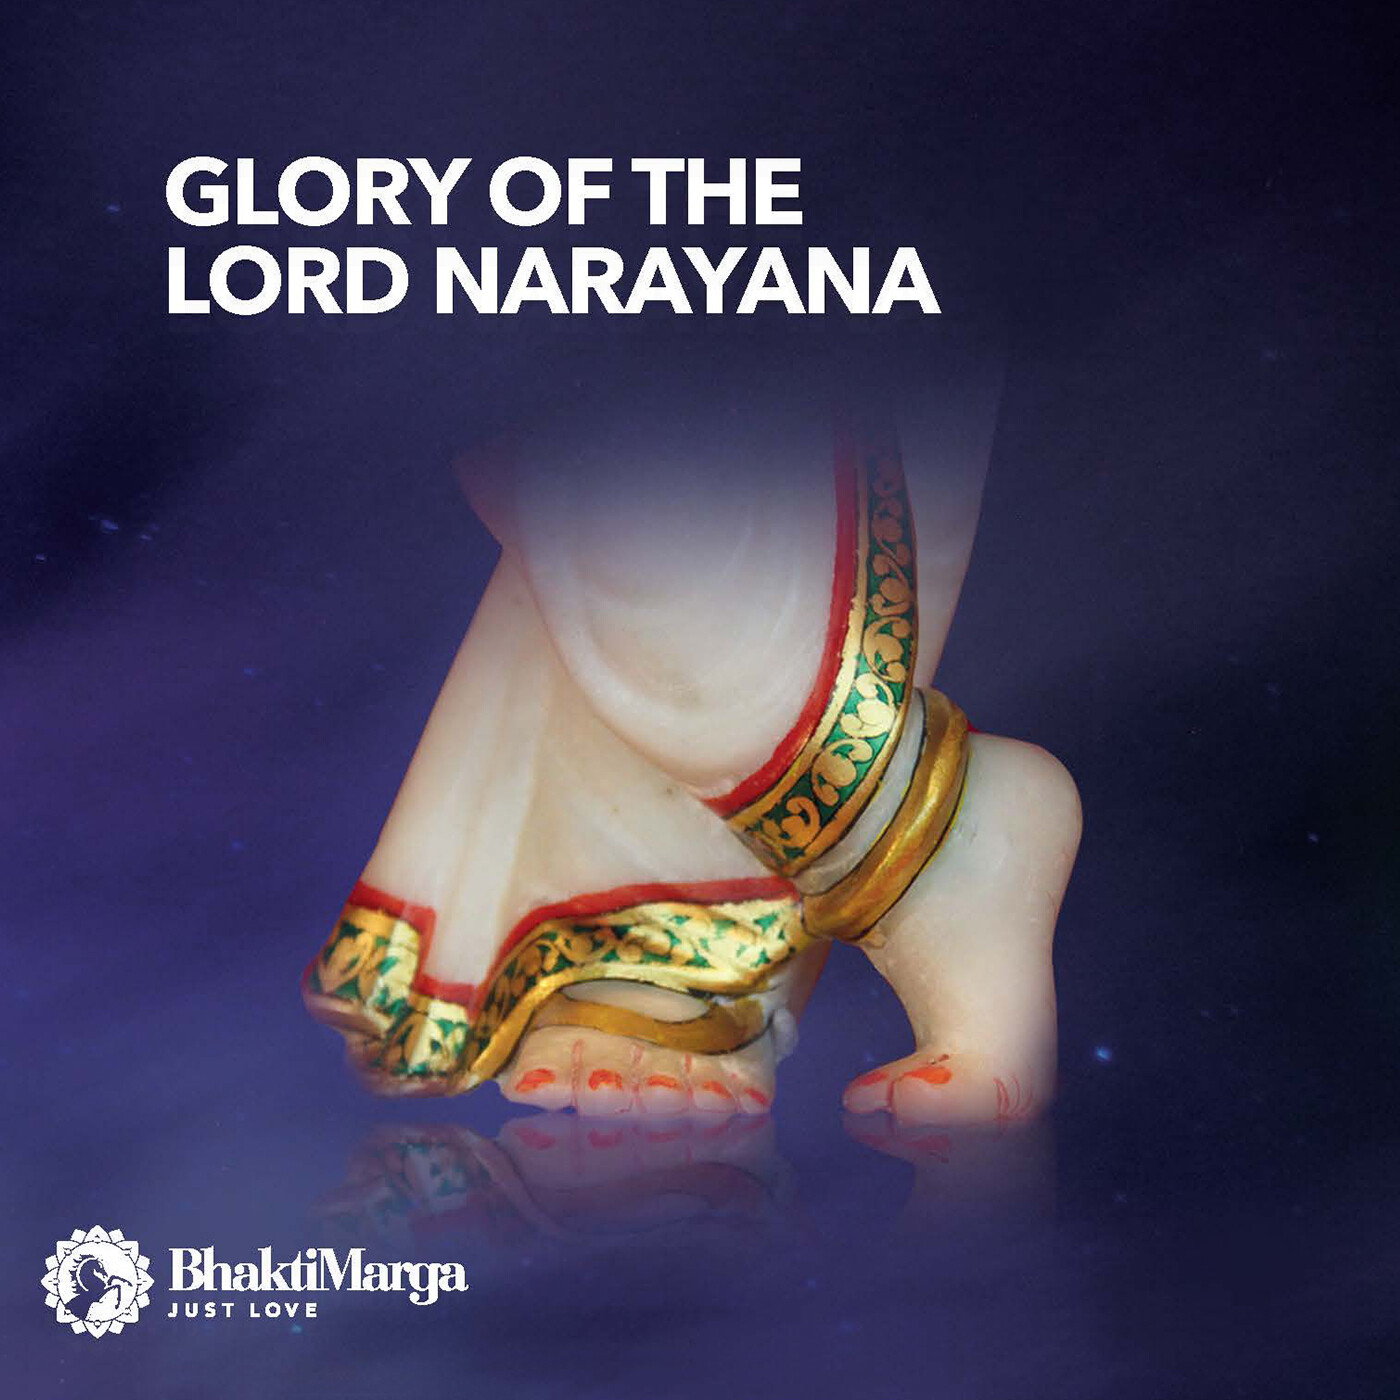 Glory of the Lord Narayana